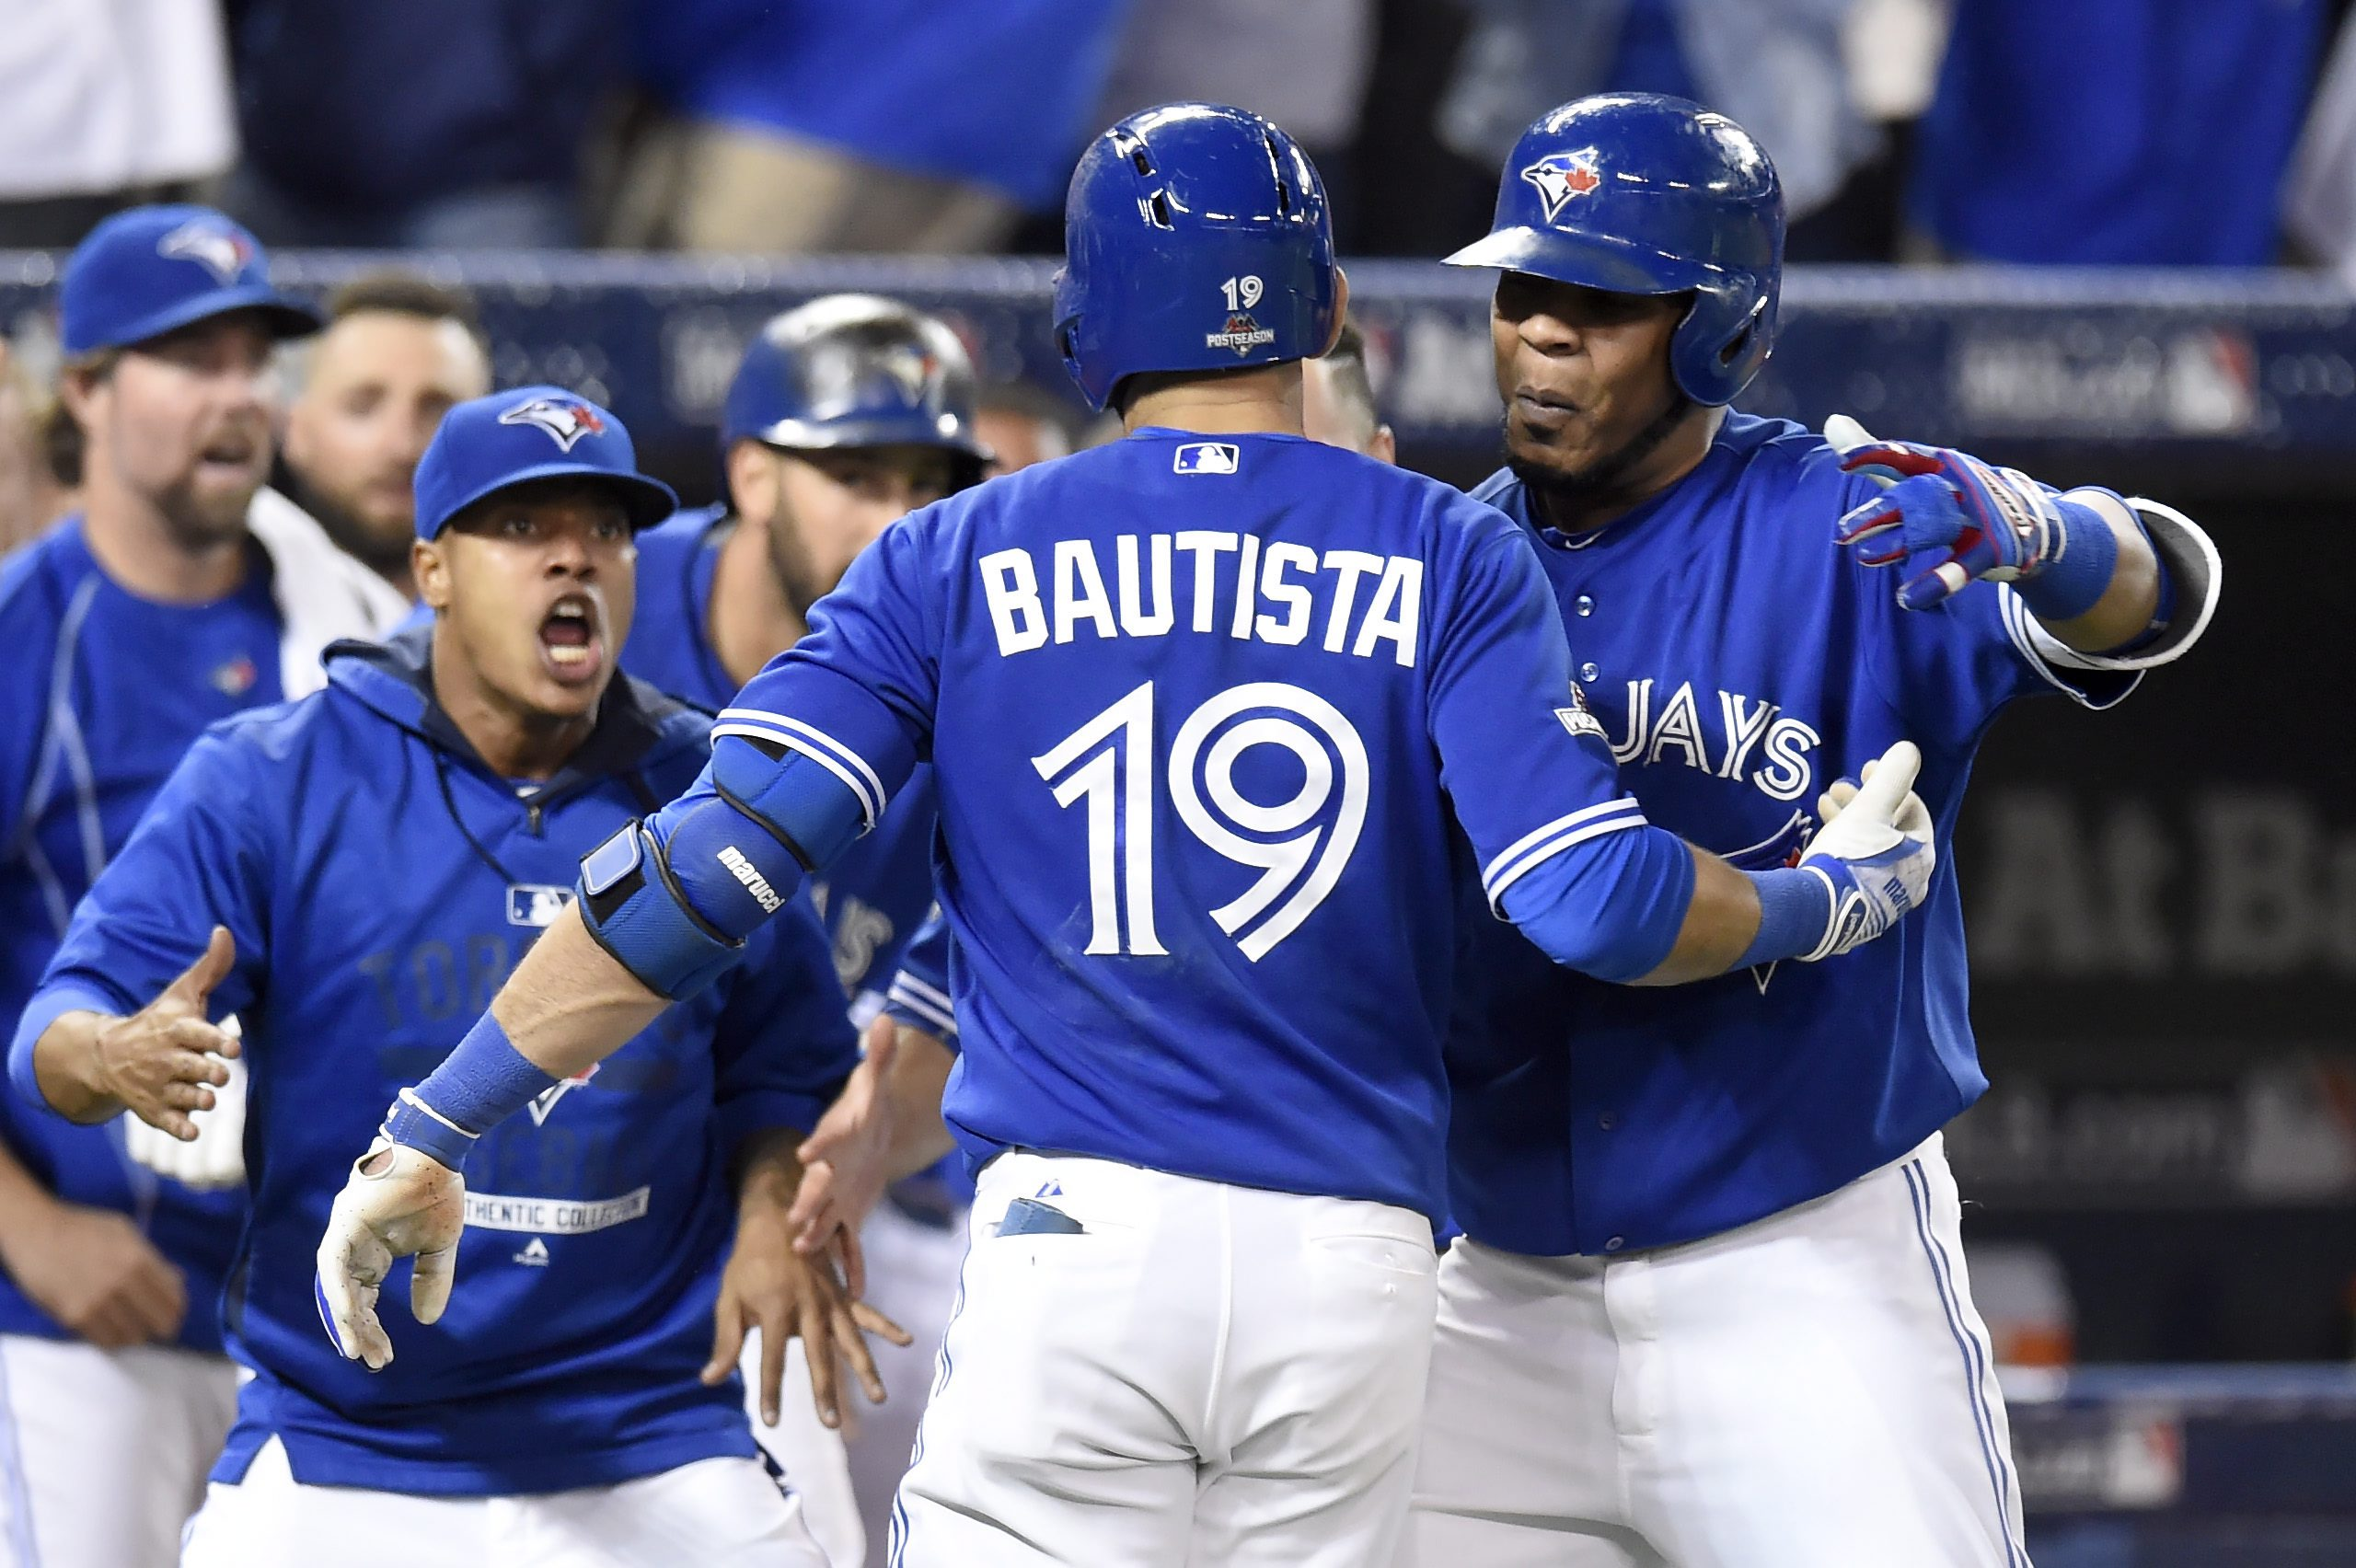 Toronto Blue Jays' Jose Bautista, centre, celebrates with Edwin Encarnacion, right, and Marcus Stroman after hitting a three-run home run against the Texas Rangers during the seventh inning of game 5 American League Division Series baseball action in Toronto on Wednesday, Oct. 14, 2015. THE CANADIAN PRESS/Frank Gunn